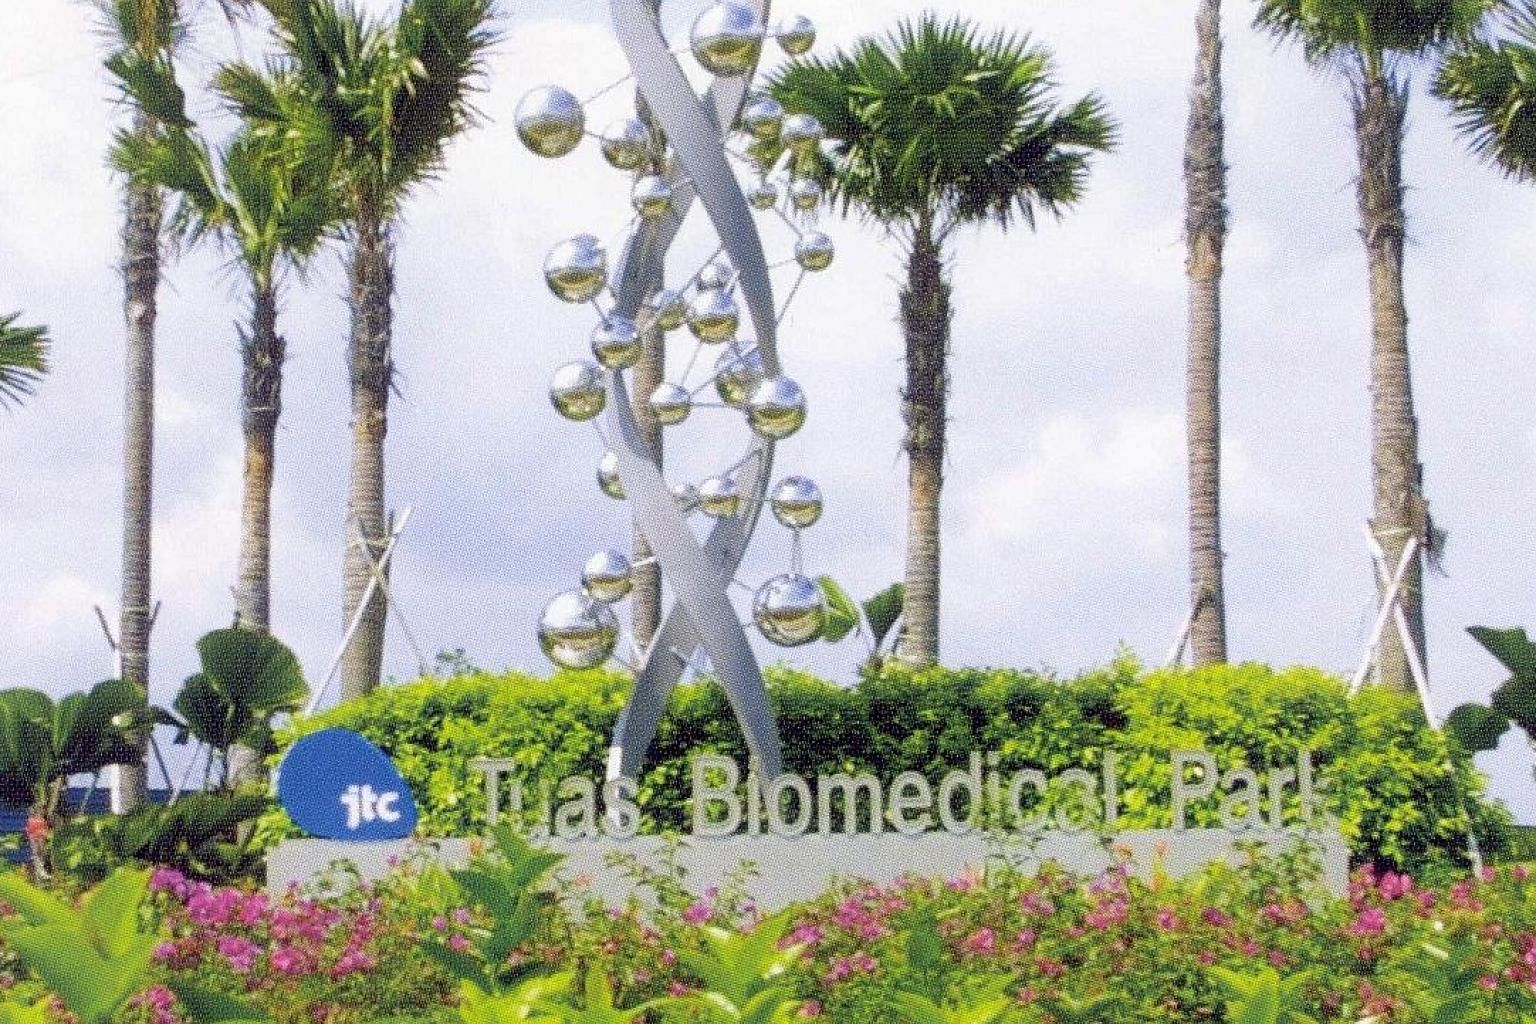 In 2000, Tuas Biomedical Park is launched as a world-class manufacturing hub for the biomedical industry. In 1983, Nobel laureate Sydney Brenner proposes setting up the Institute of Molecular and Cell Biology In 2001, EDB chairman Philip Yeo becomes